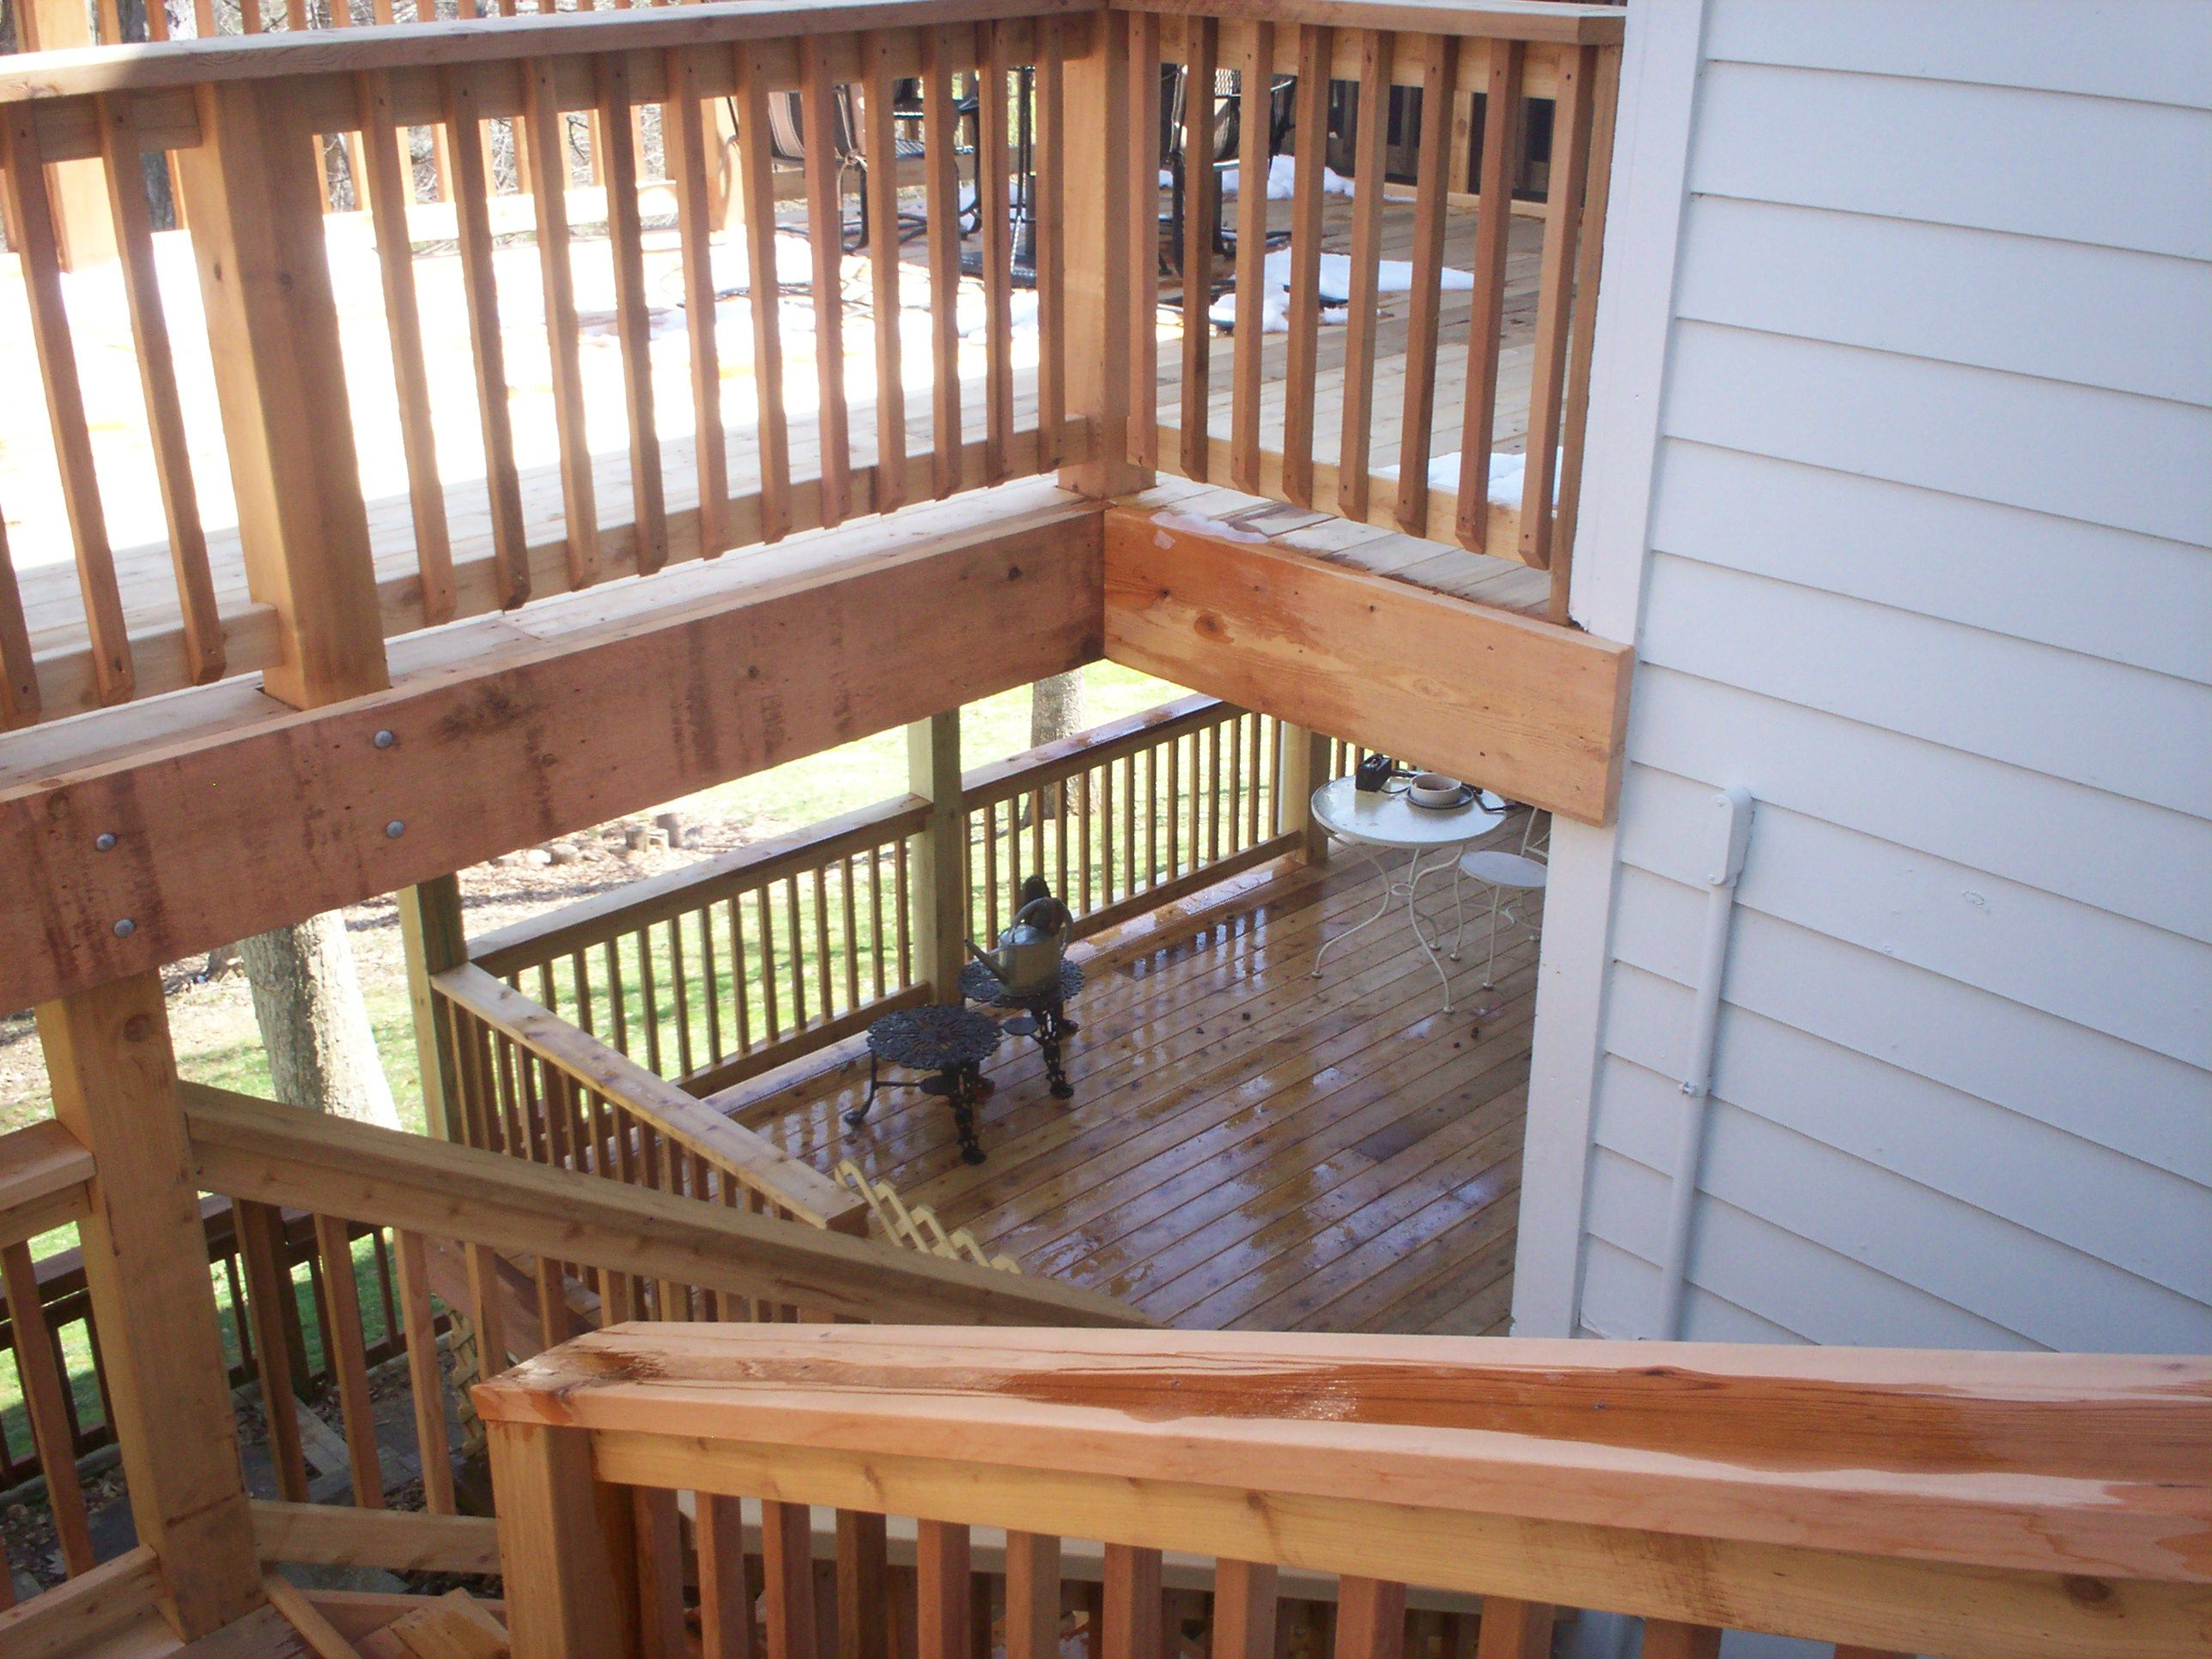 2 Story Deck Designs | Deck Design In St. Louis: Gallery Of Options »